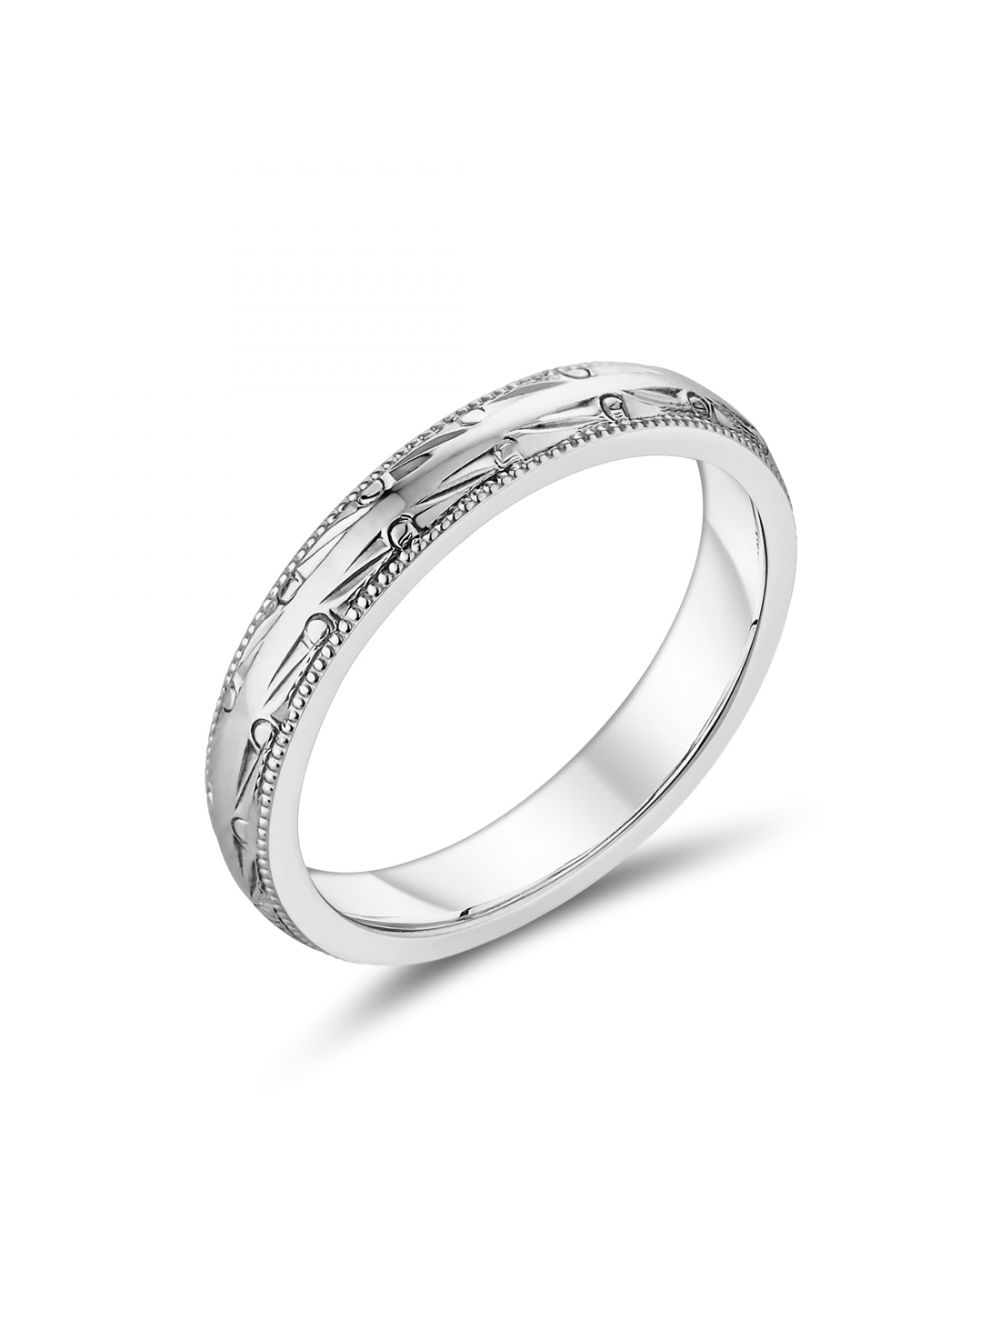 18ct White Gold Ladies Wedding Band With Bead Detail